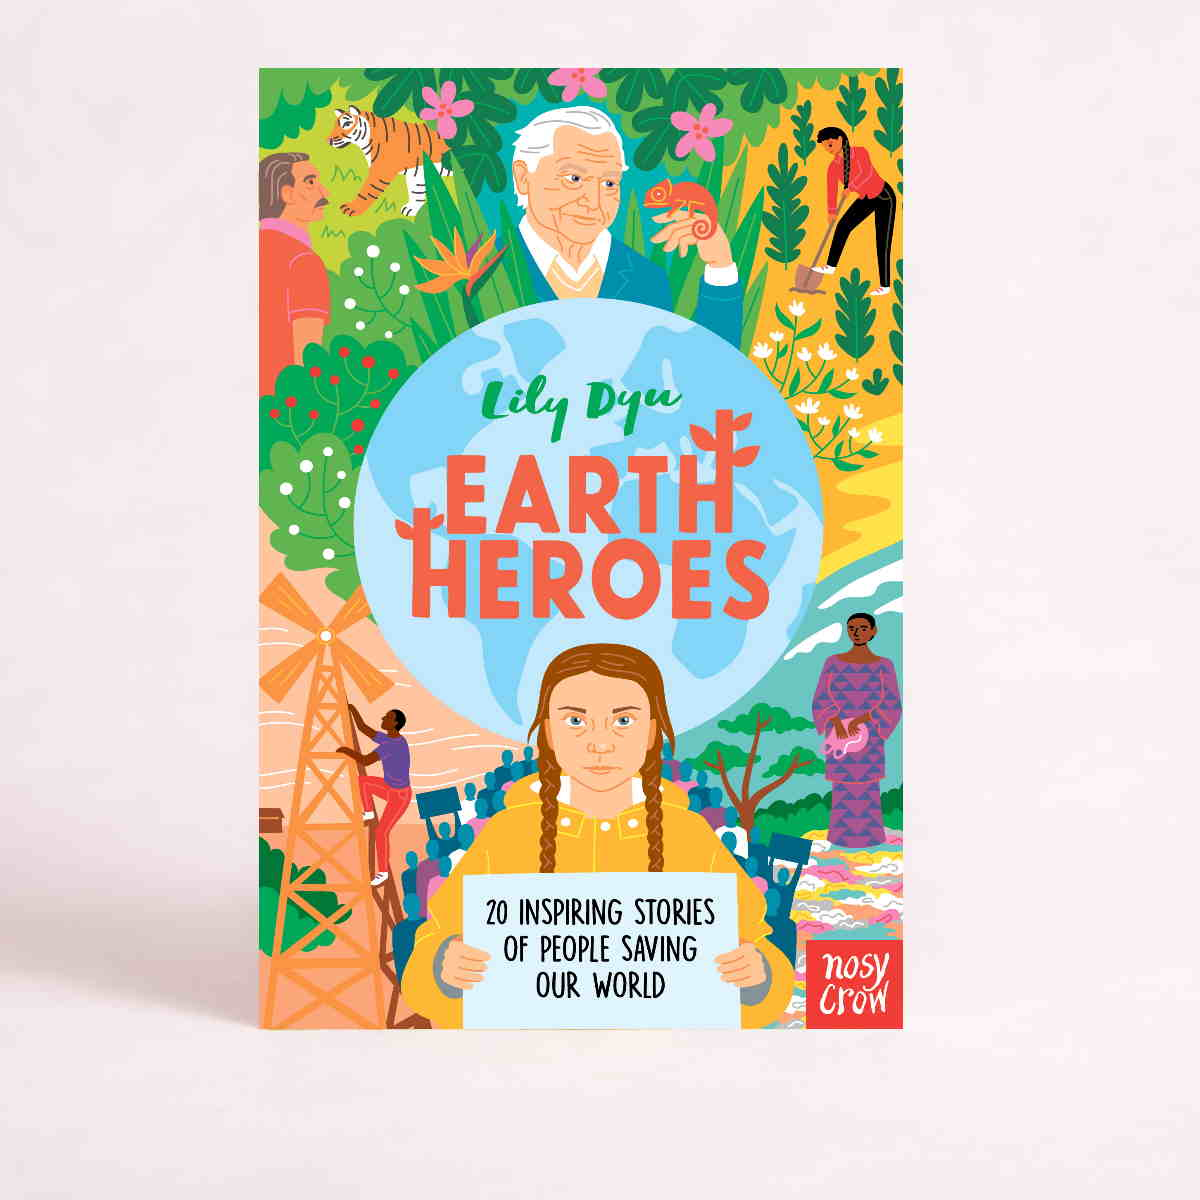 Earth Heroes | By Lily Dyu